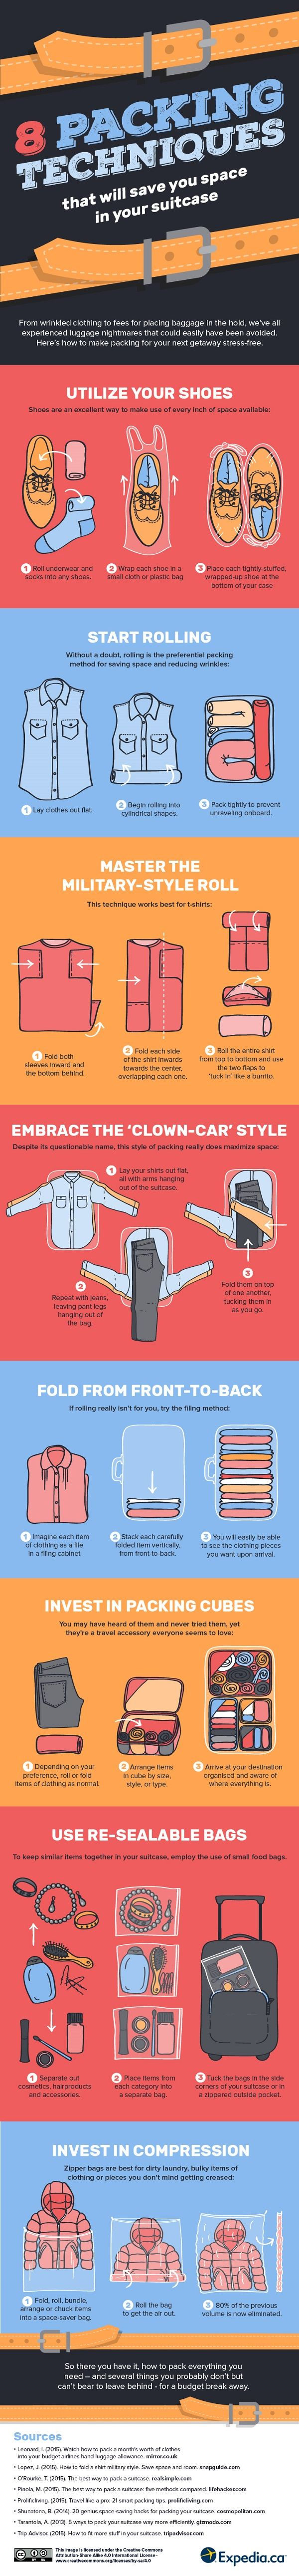 Photo of Pack your bags like a pro: How to get the most out of it